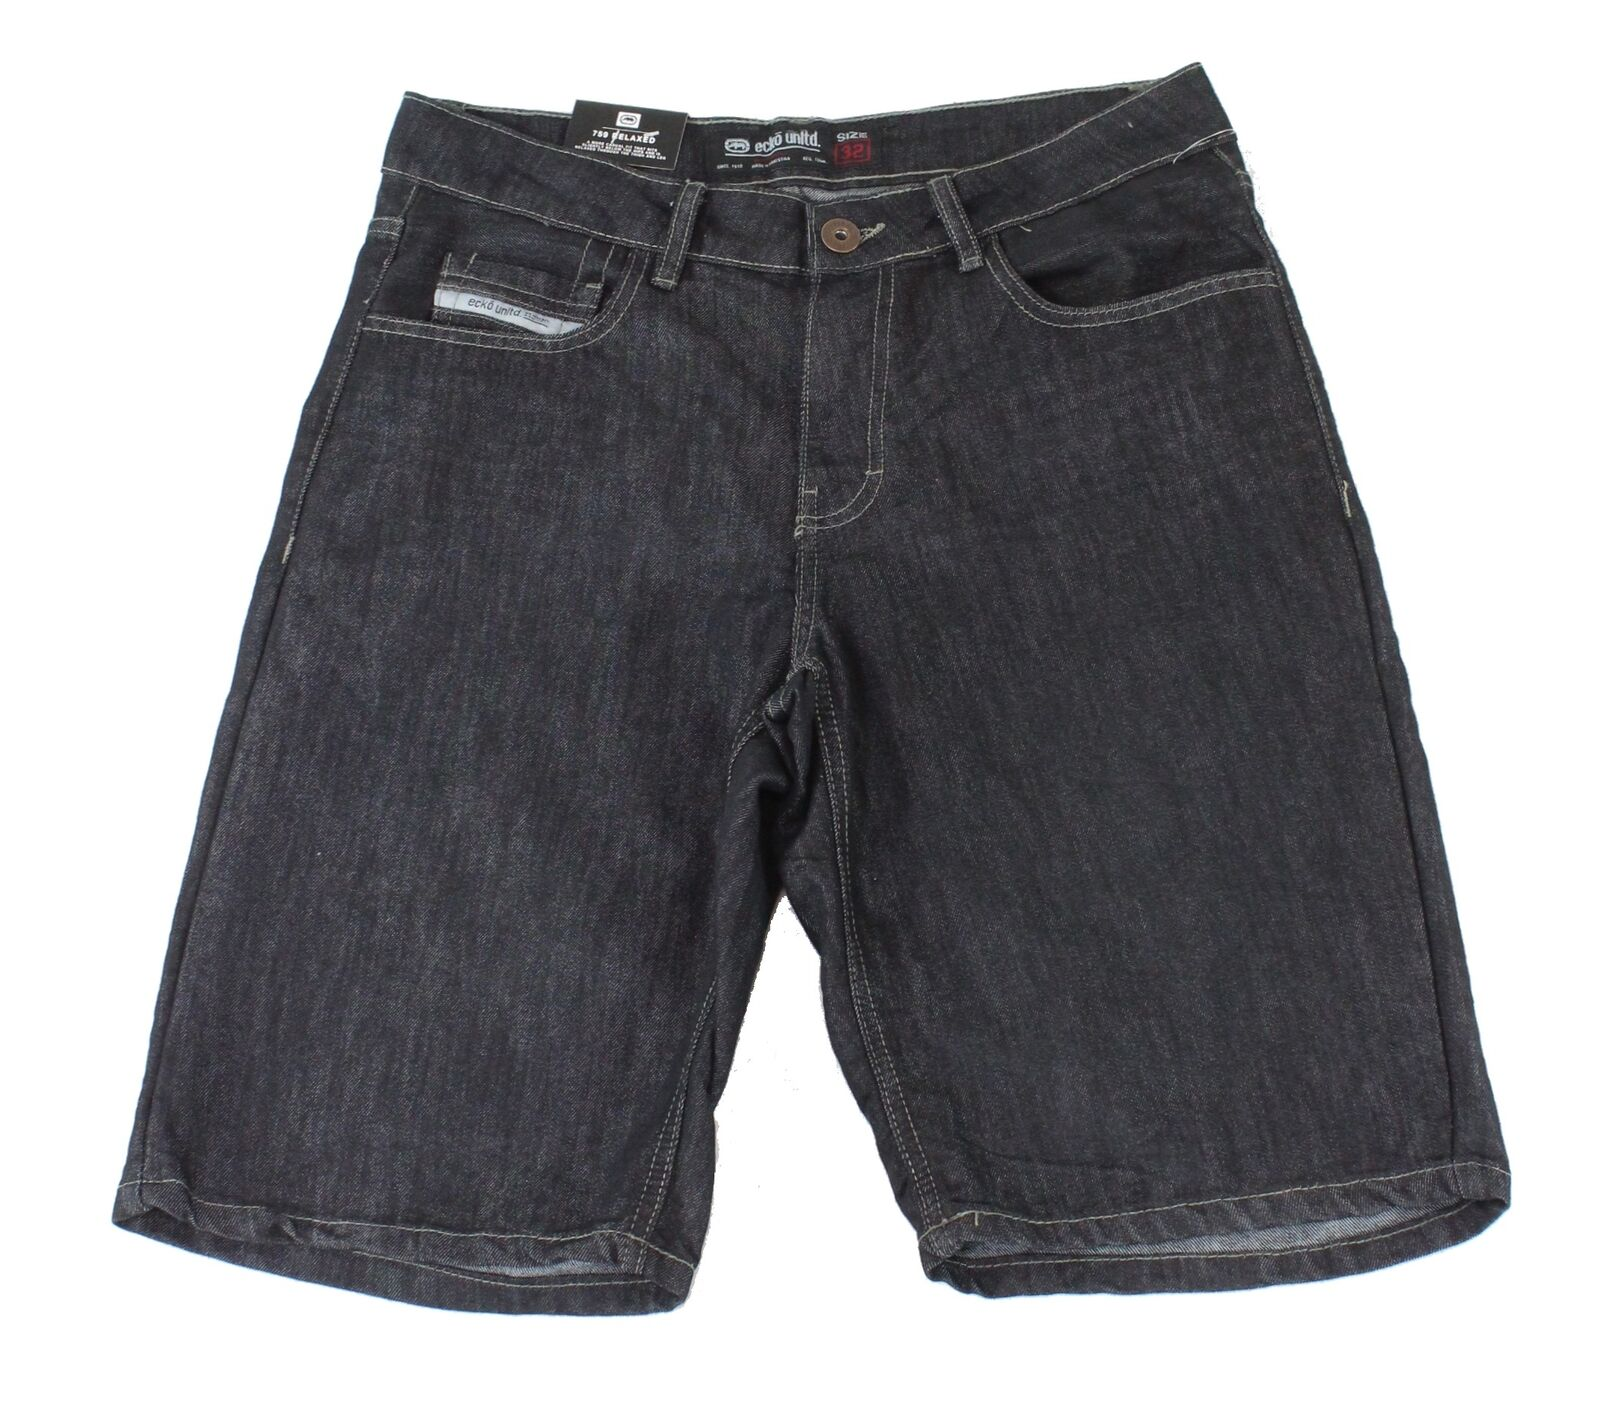 New-Ecko-Unltd-Mens-Shorts-Blue-Size-38-Denim-759-Relaxed-Fit-Embossed-48-148